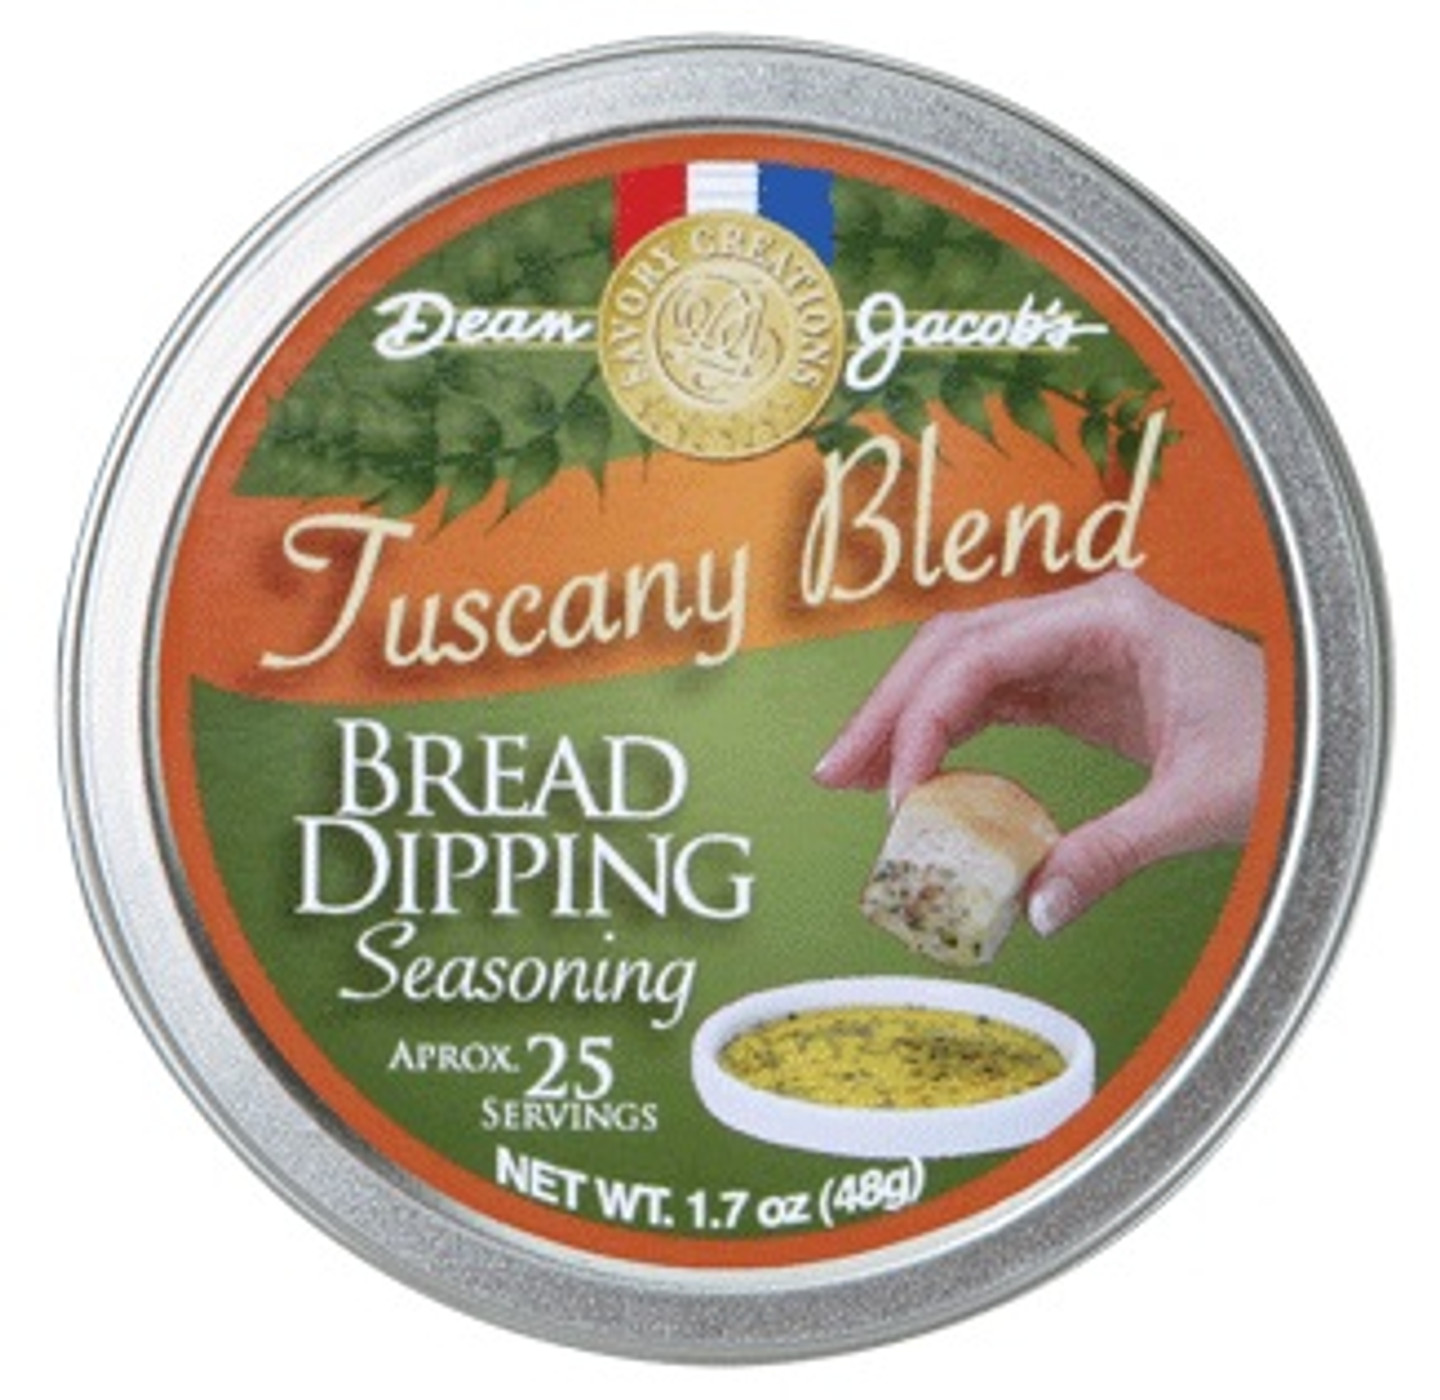 Tuscany Blend Bread Dipping Tin  1.7oz